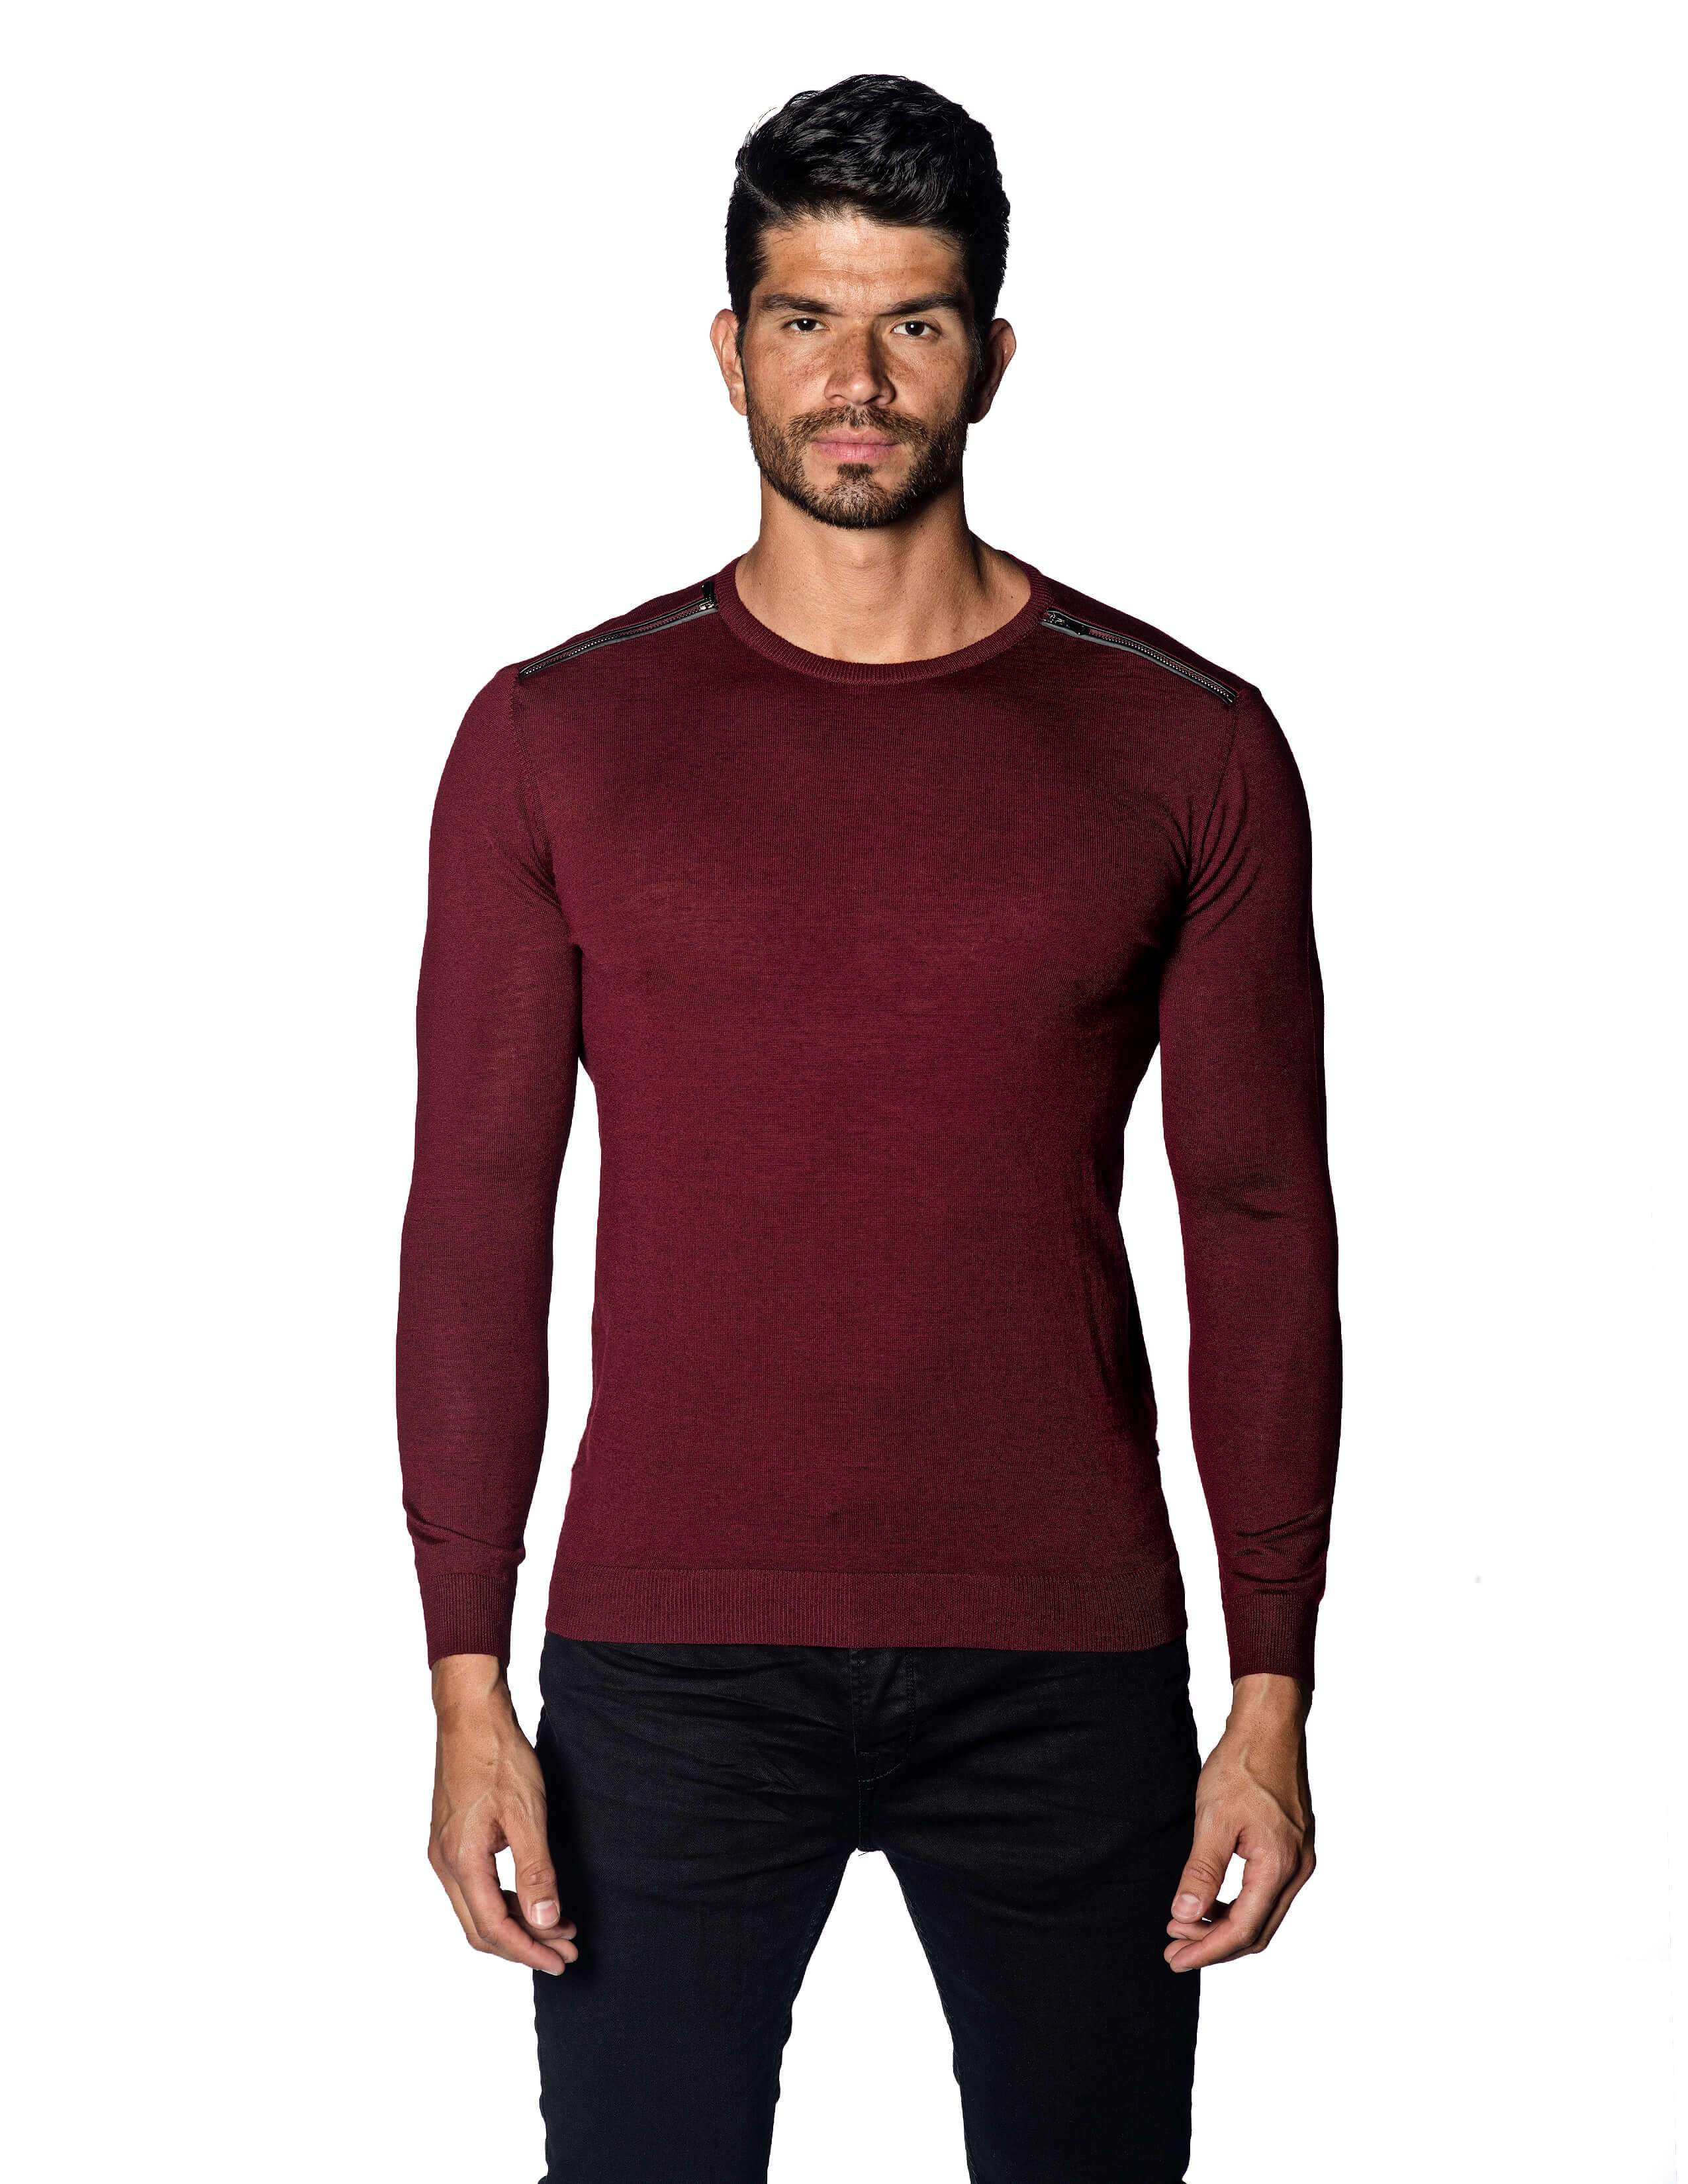 Red Sweater Crew Neck with Zipper Piping for Men 1888-RD